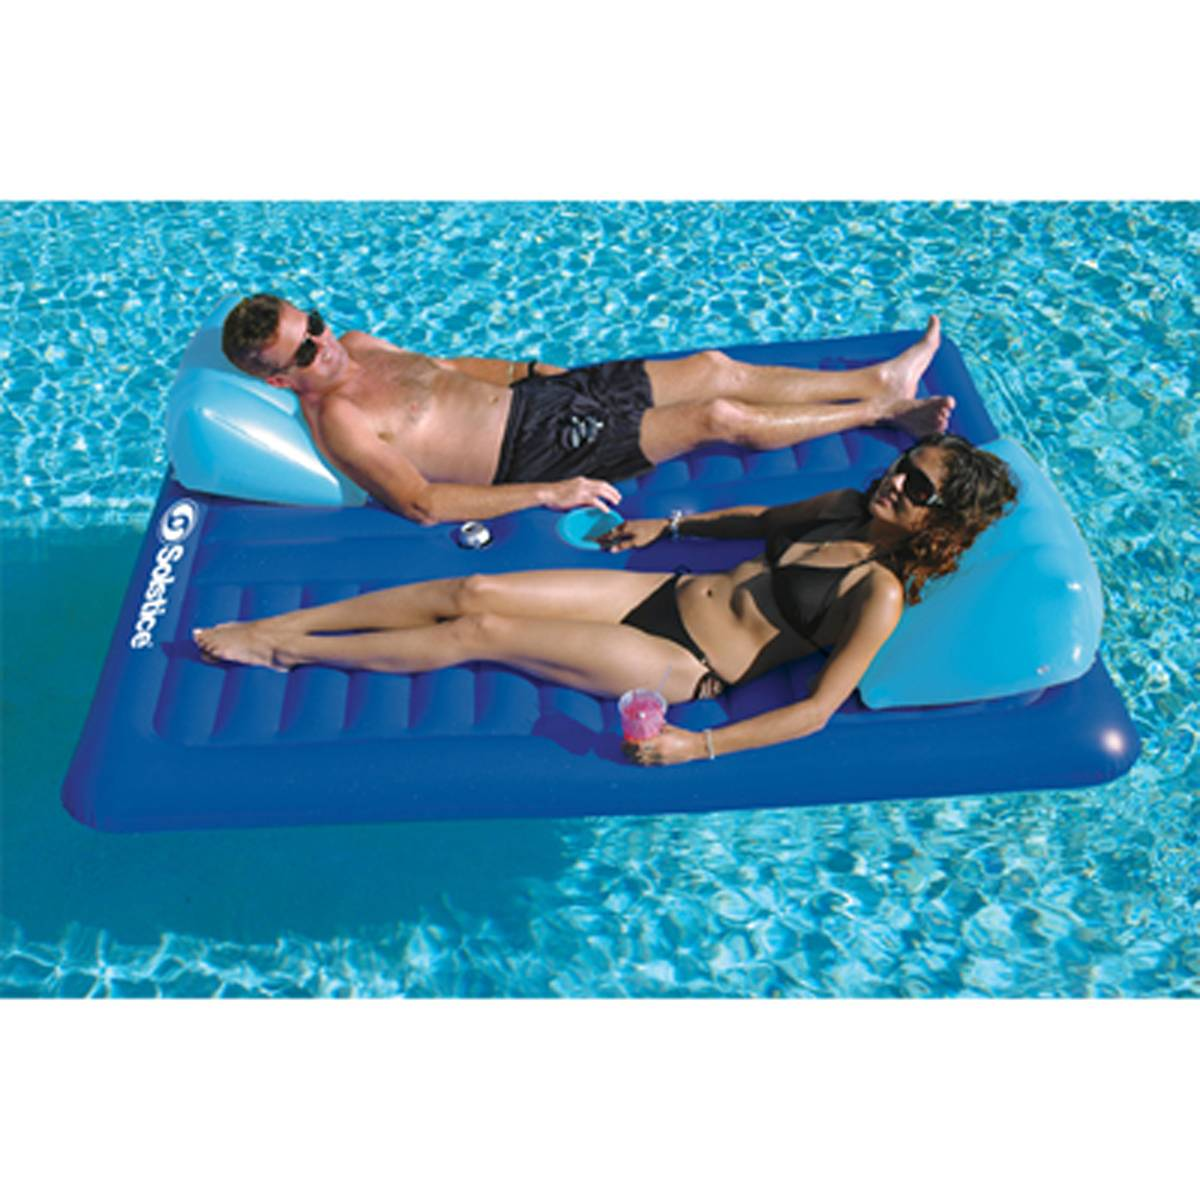 Solstice Face to Face Lounger